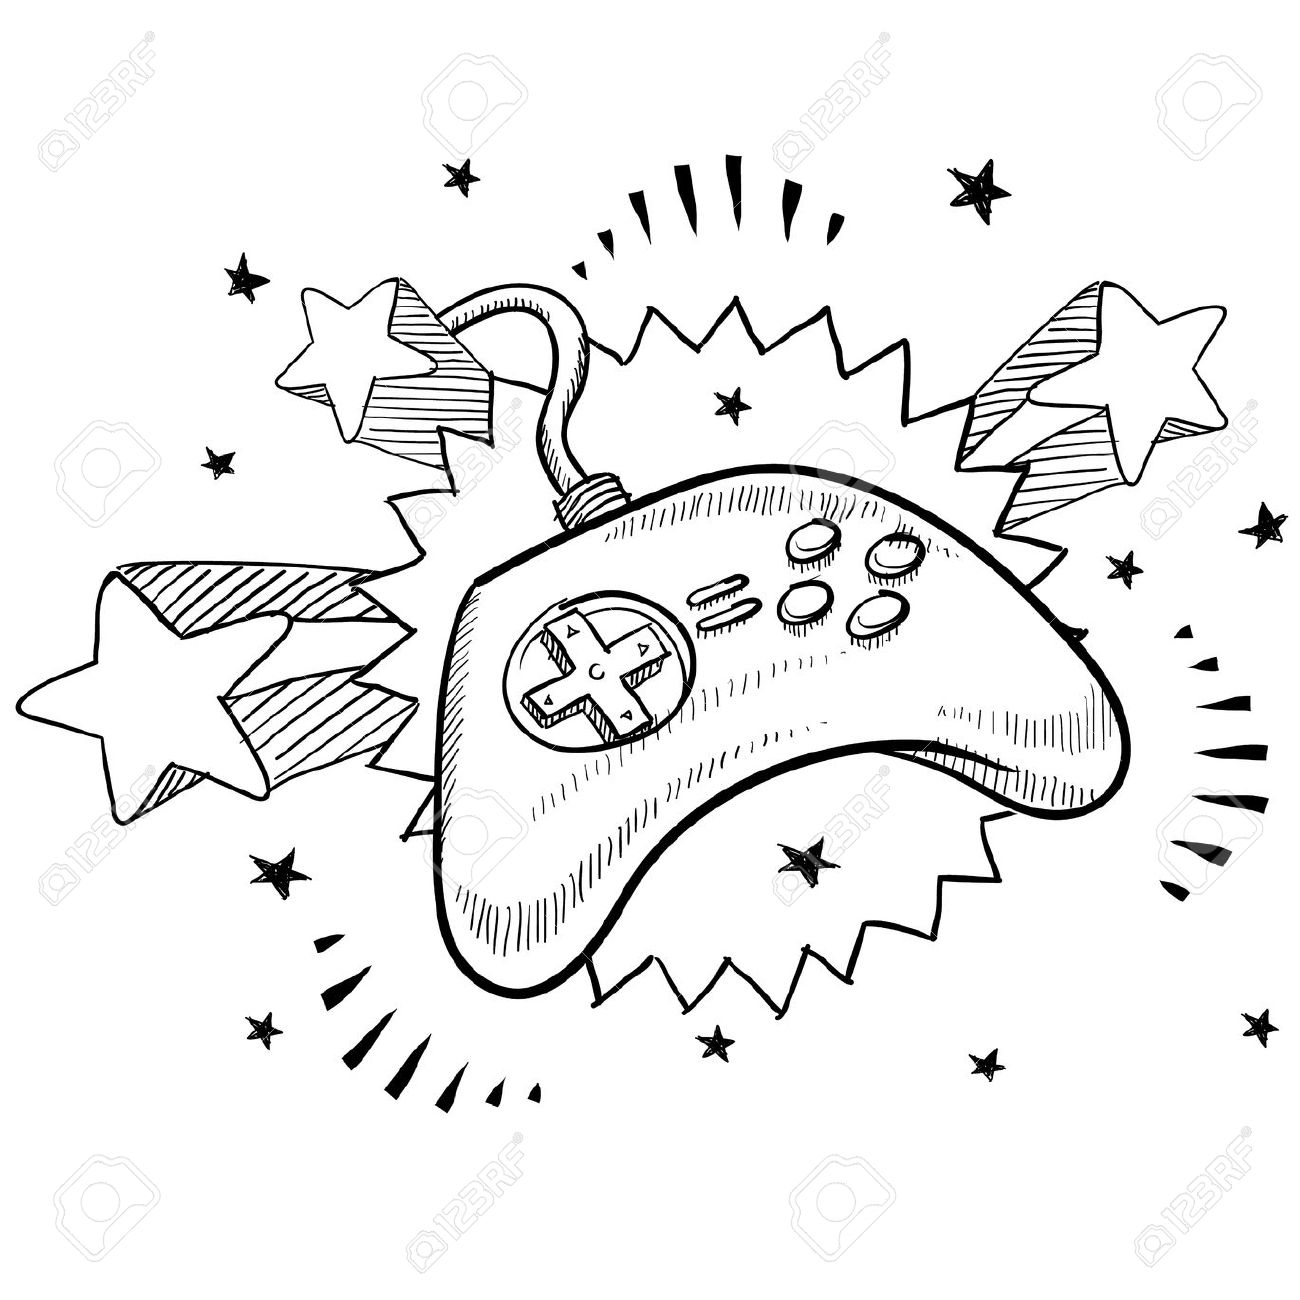 1300x1300 Doodle Drawing Games Drawn Controller Video Game Controller